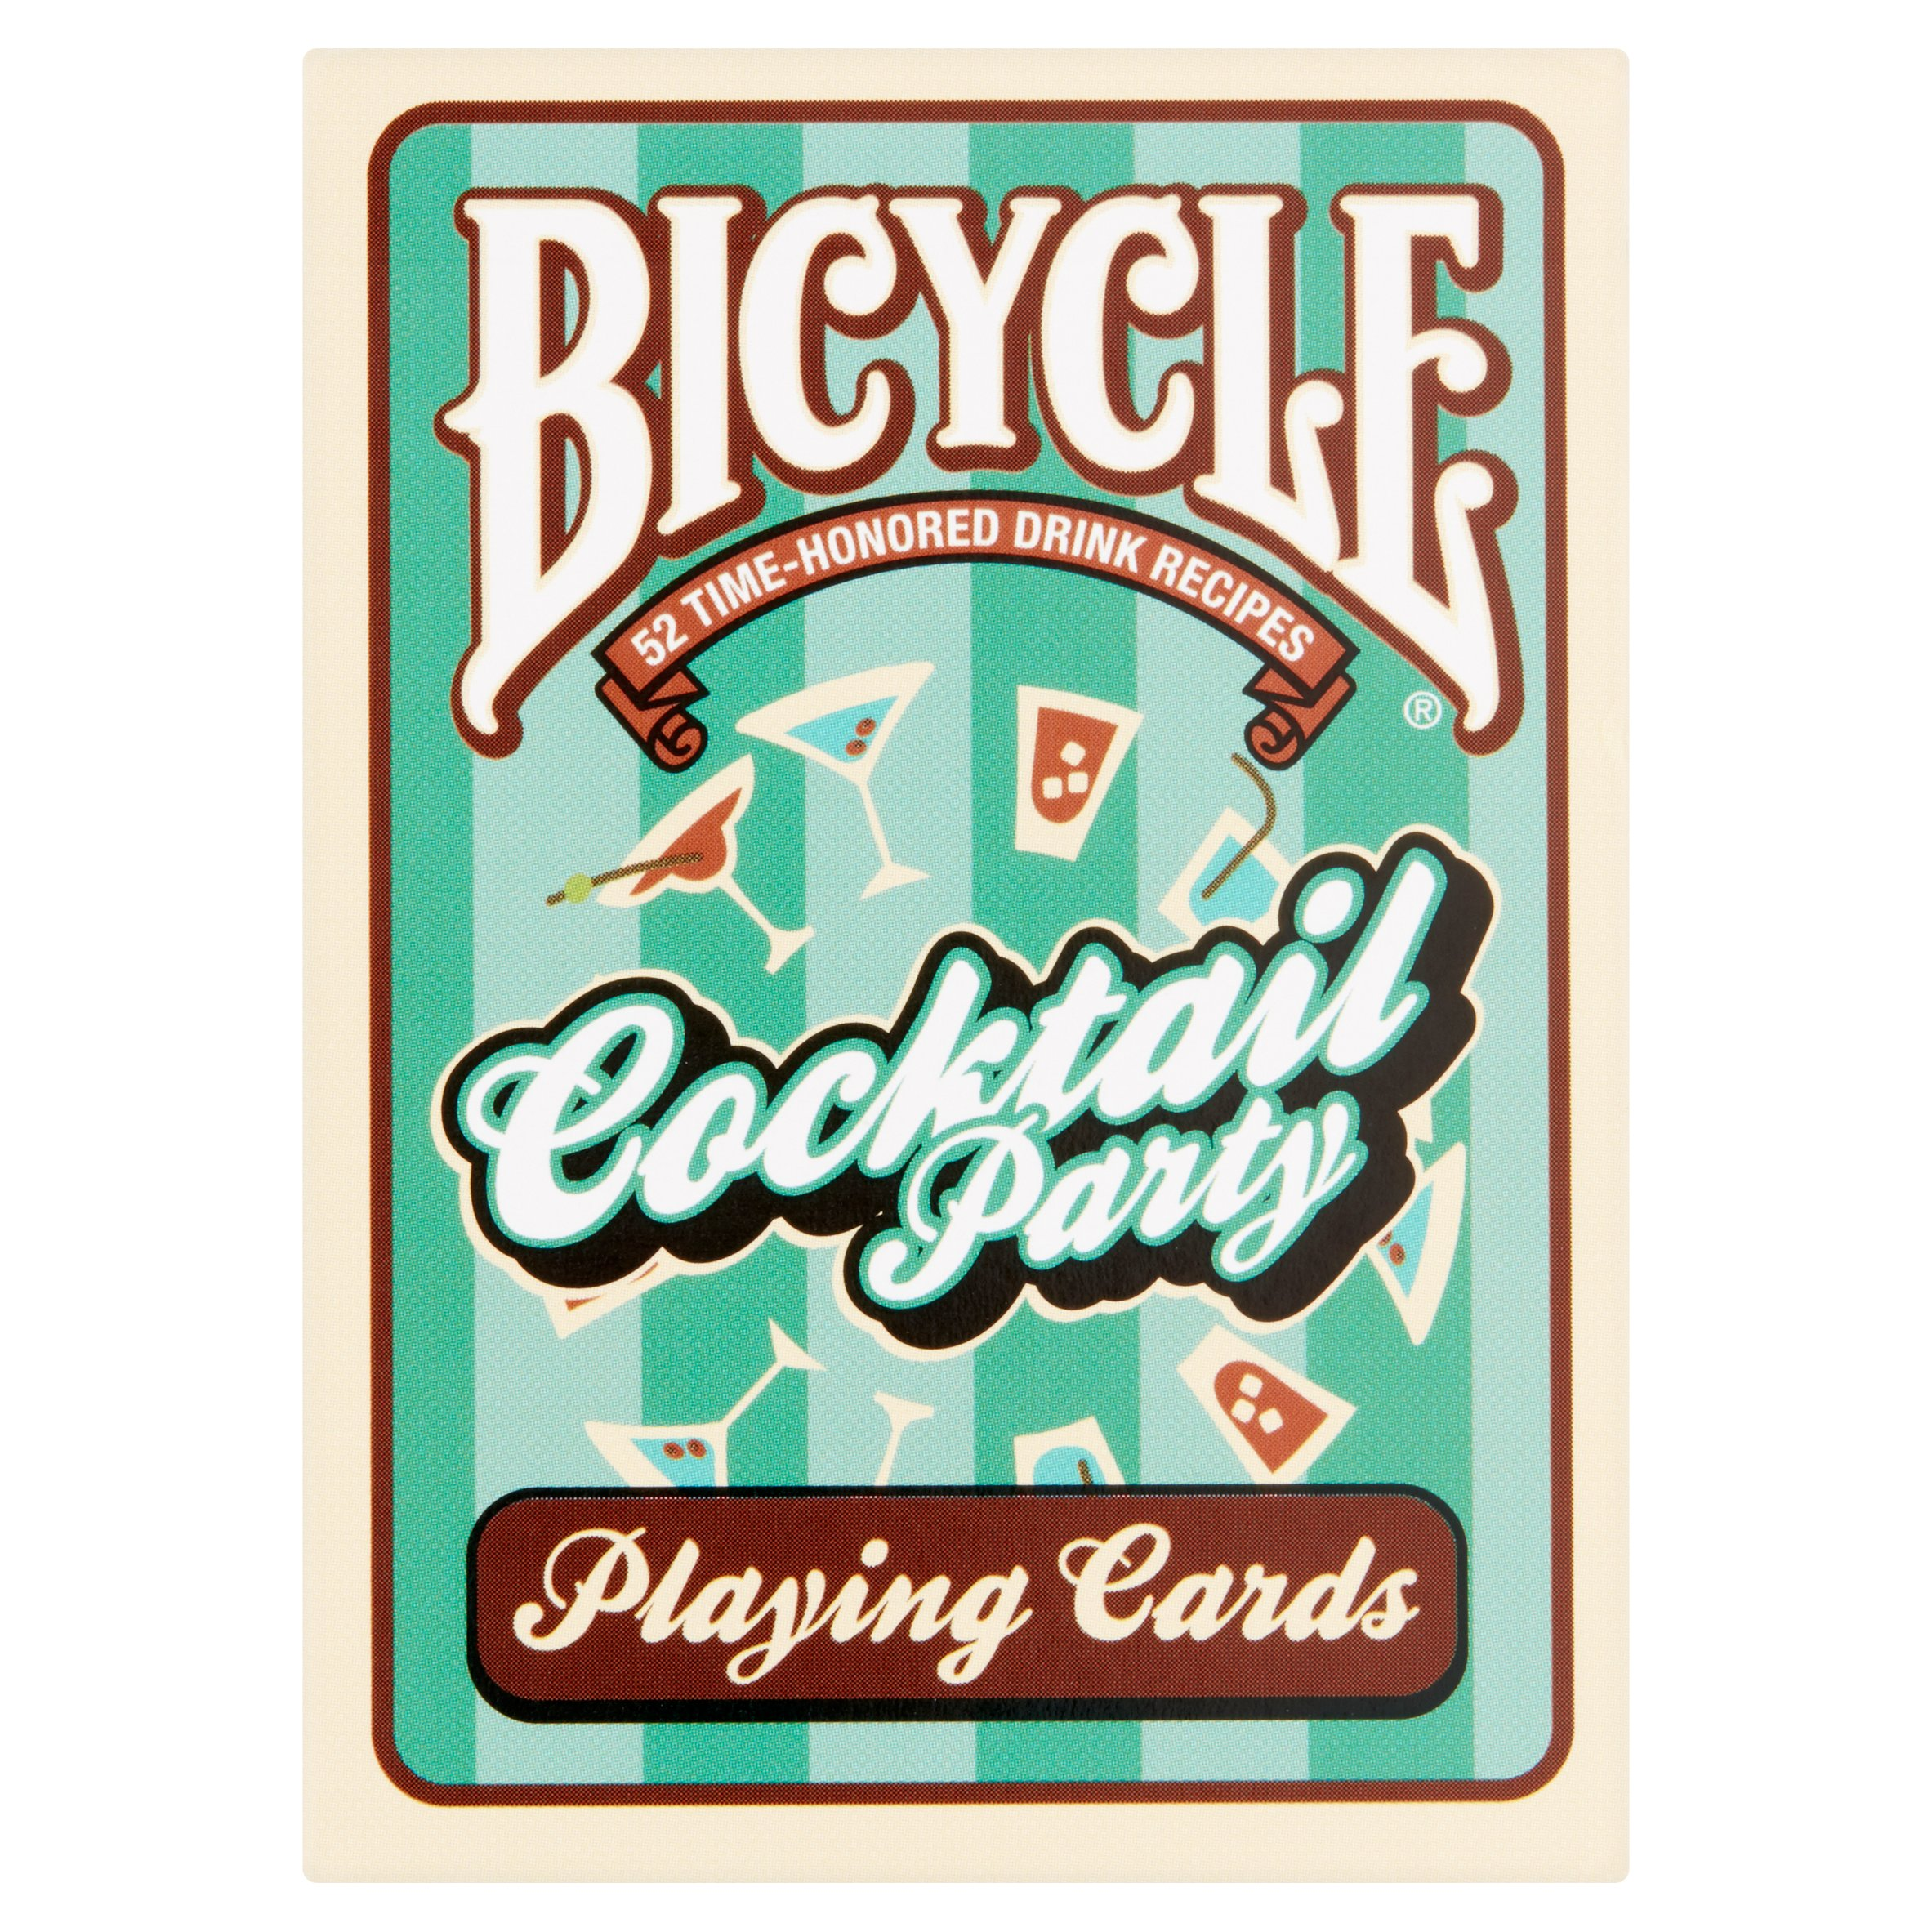 Bicycle Cocktail Party Playing Cards